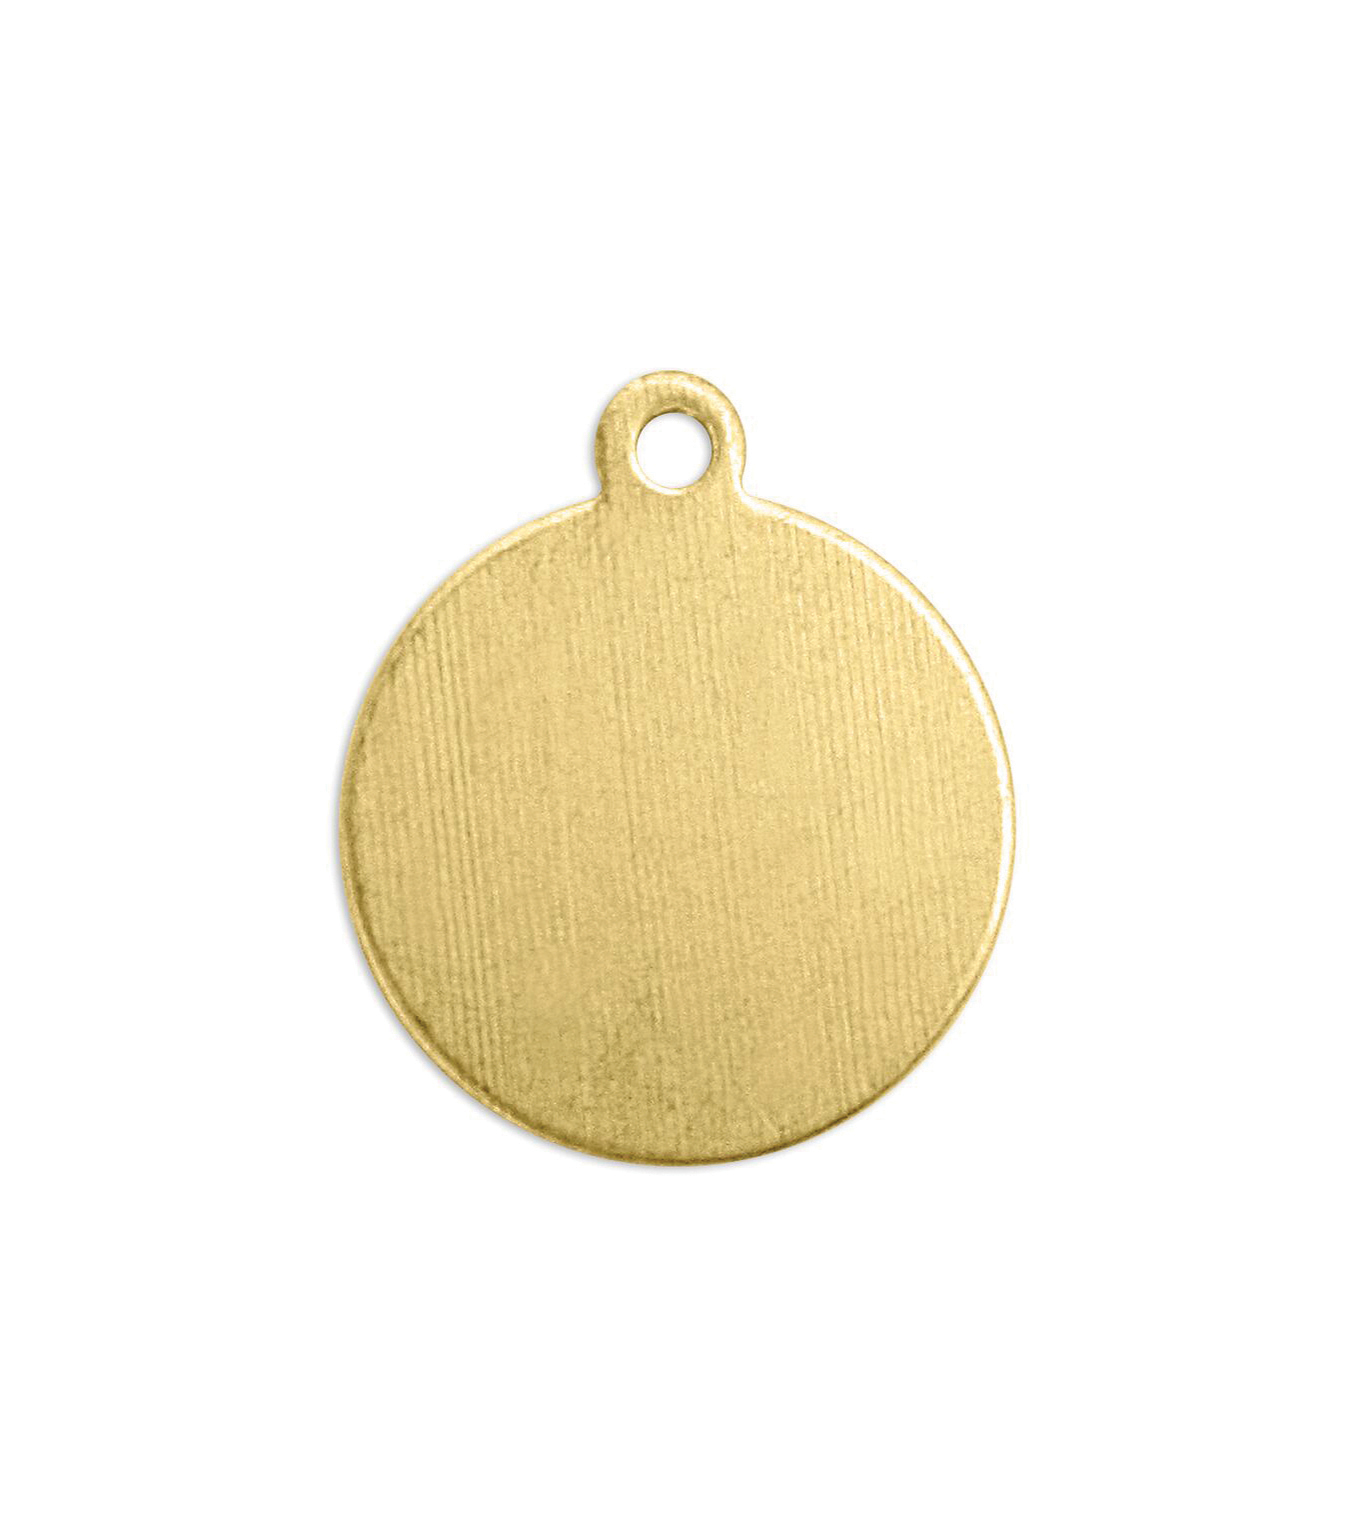 ImpressArt 0.63 oz. Brass Circle Tag with Ring Premium Stamping Blanks